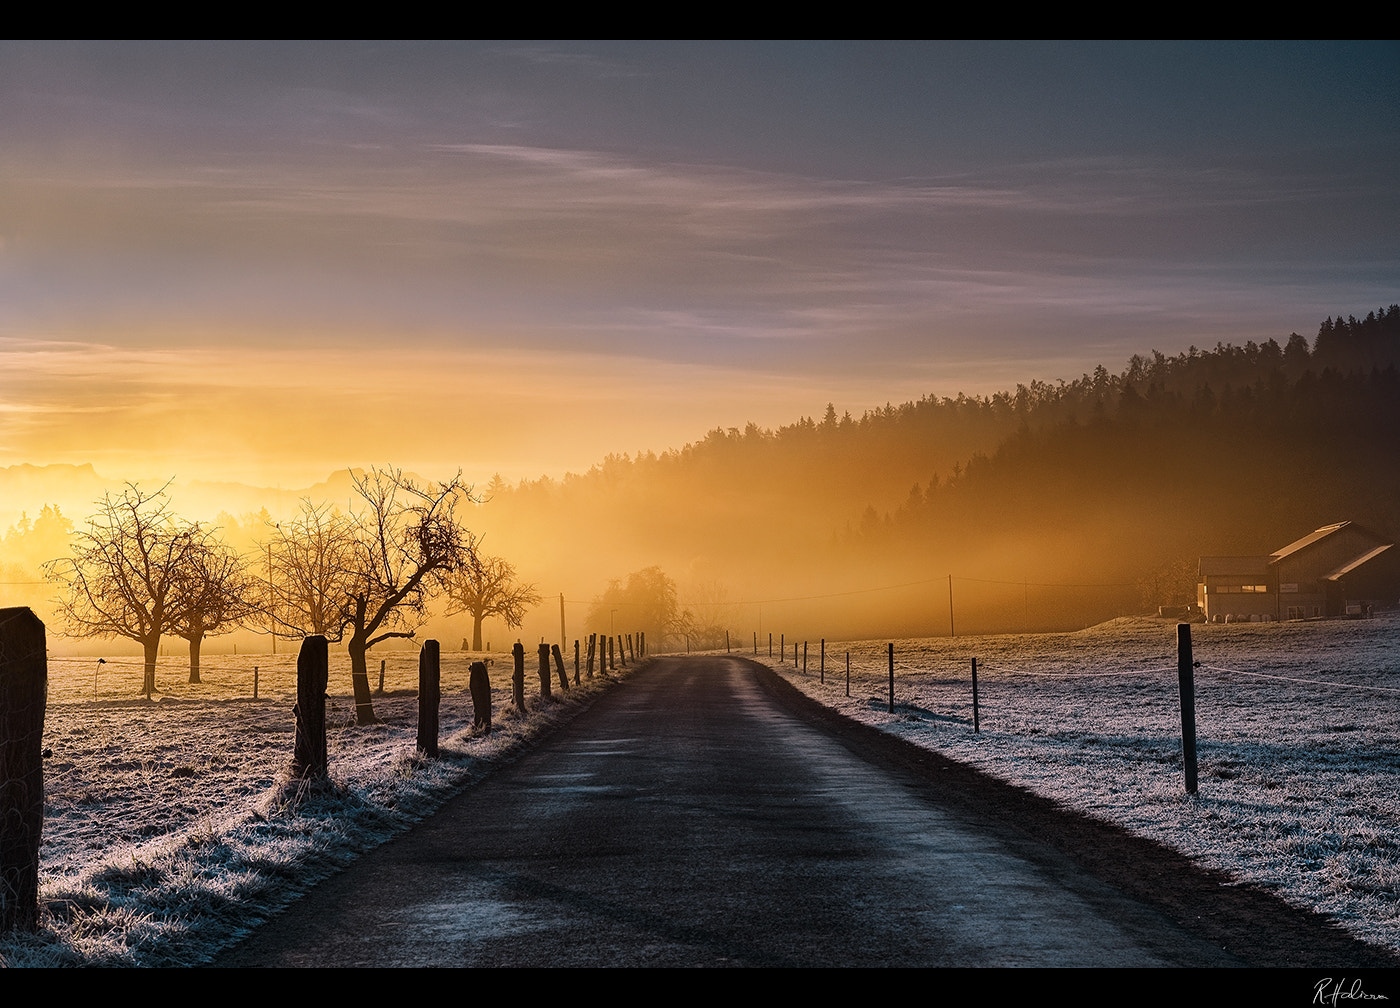 Photograph Morning Road by Robin Halioua on 500px